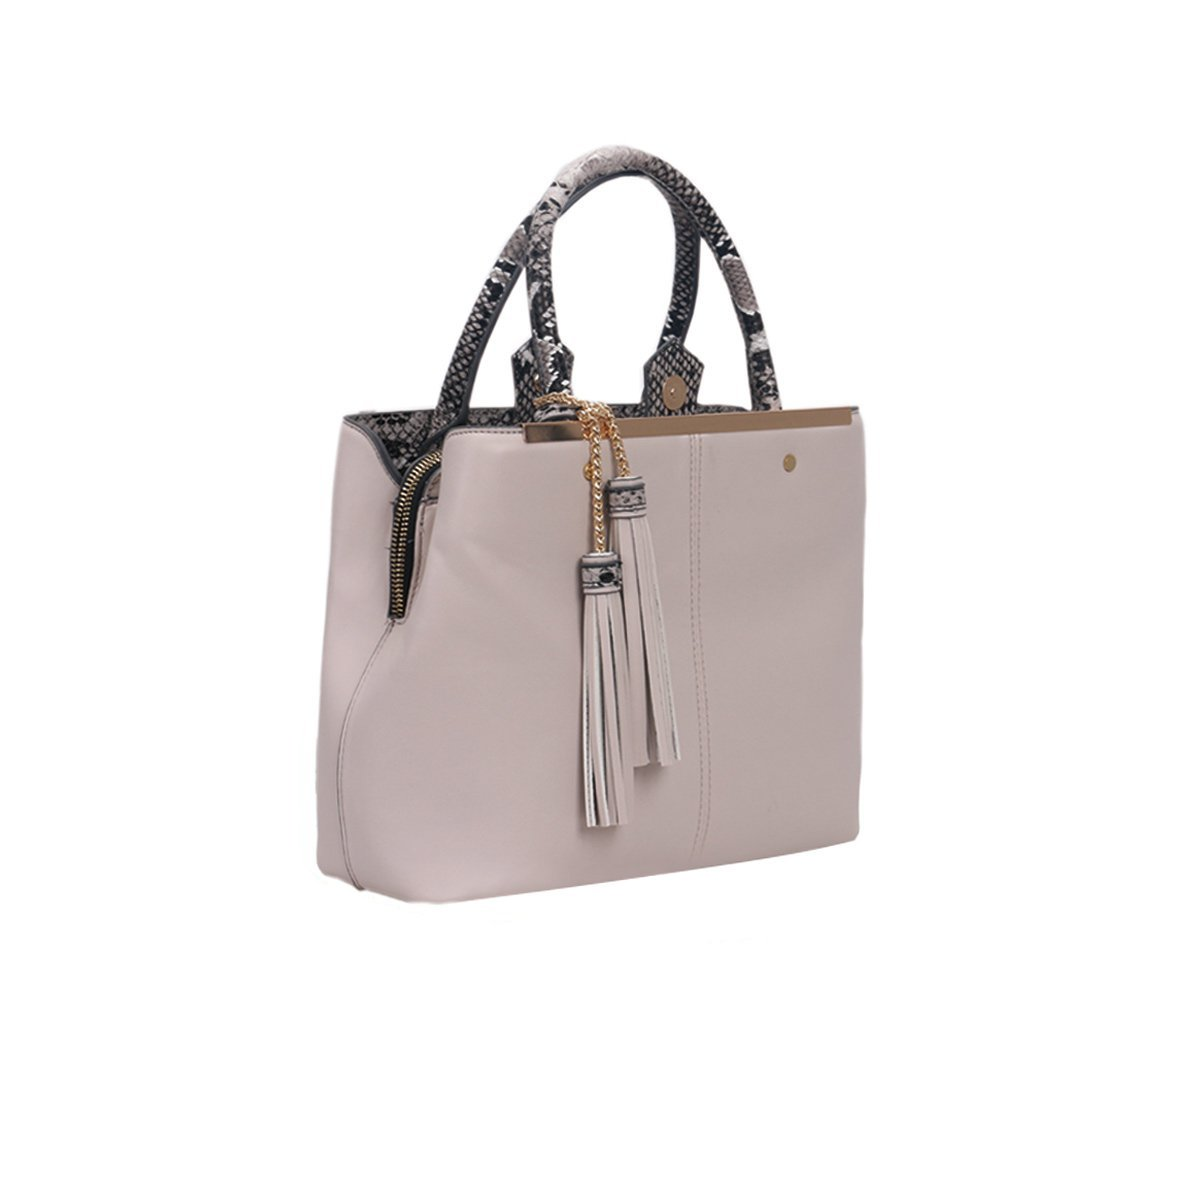 VIP LYDC Snake Tether Nude Pink Tote Bag 7e5f73a7920f0